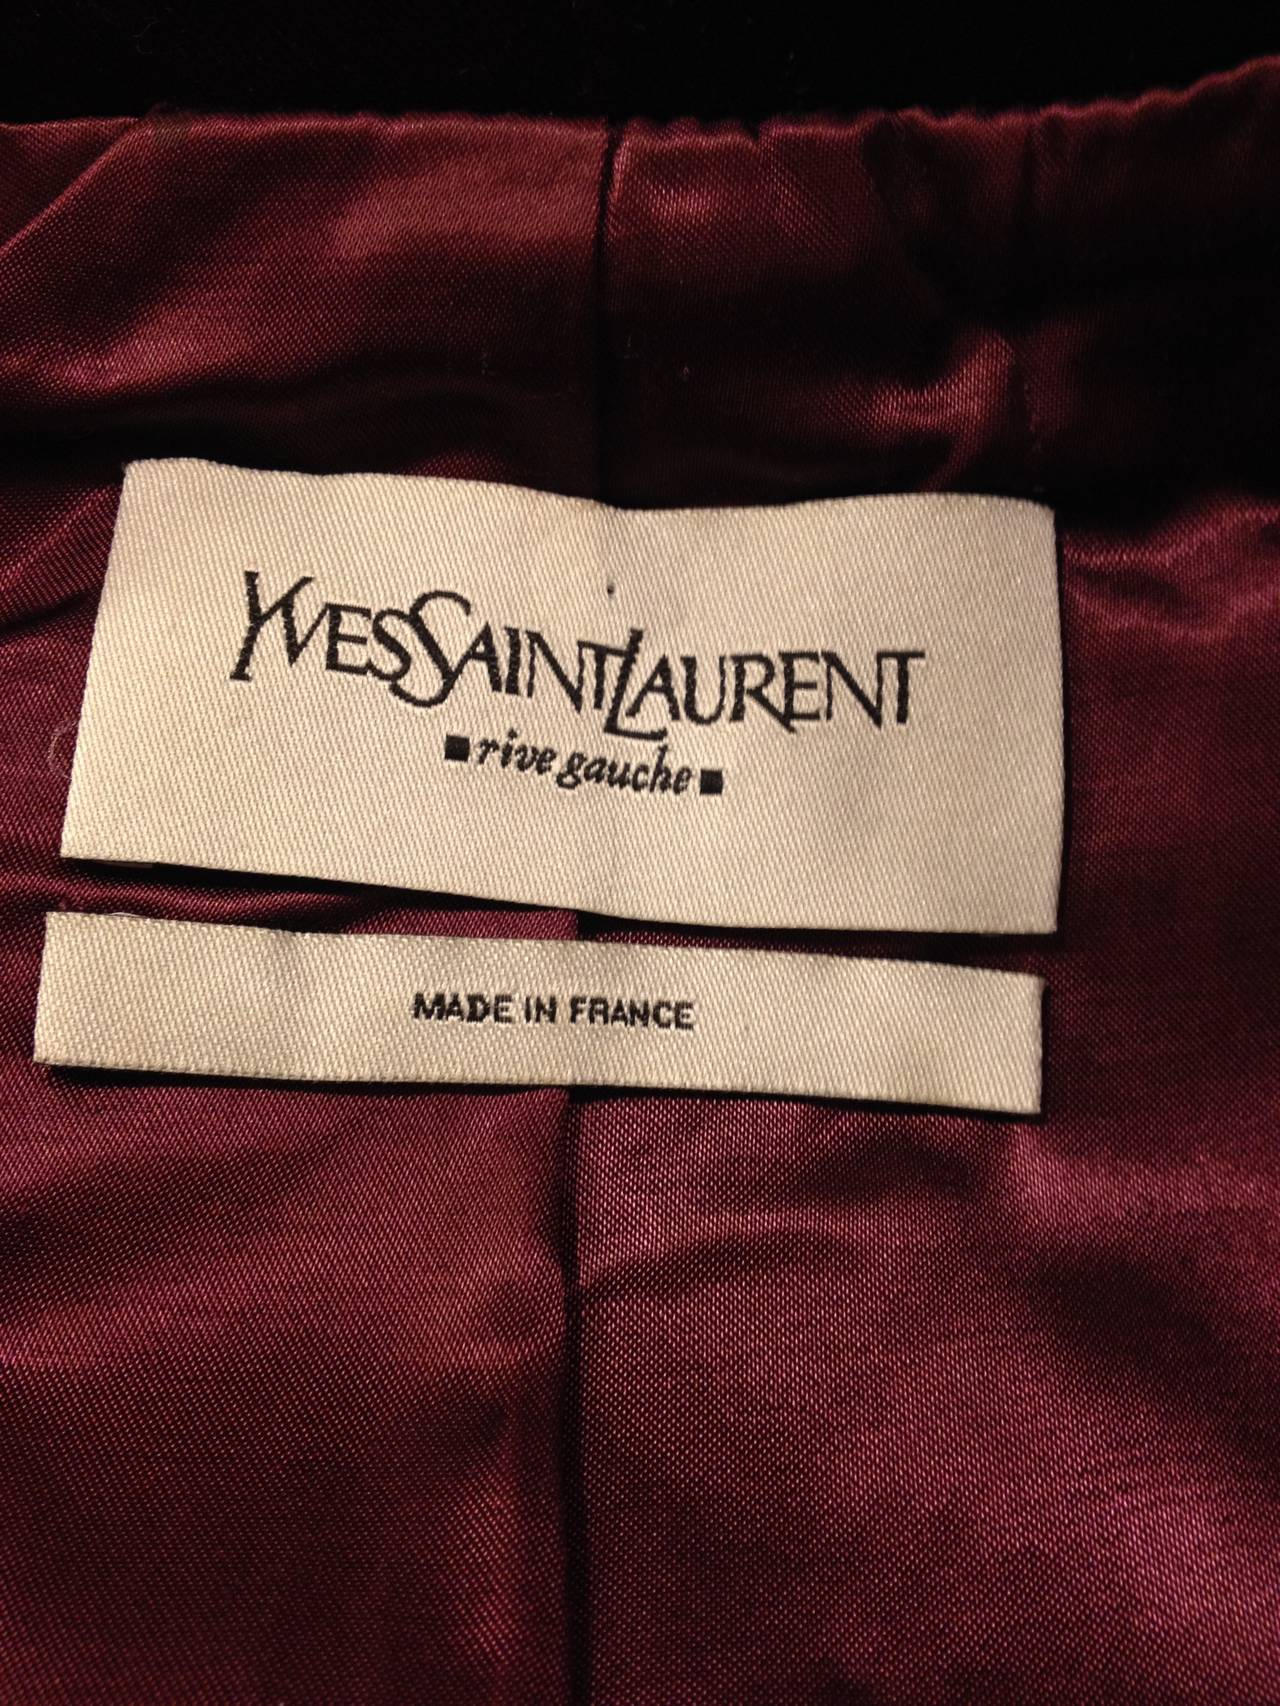 Yves Saint Laurent Wine Velvet Jacket For Sale 2